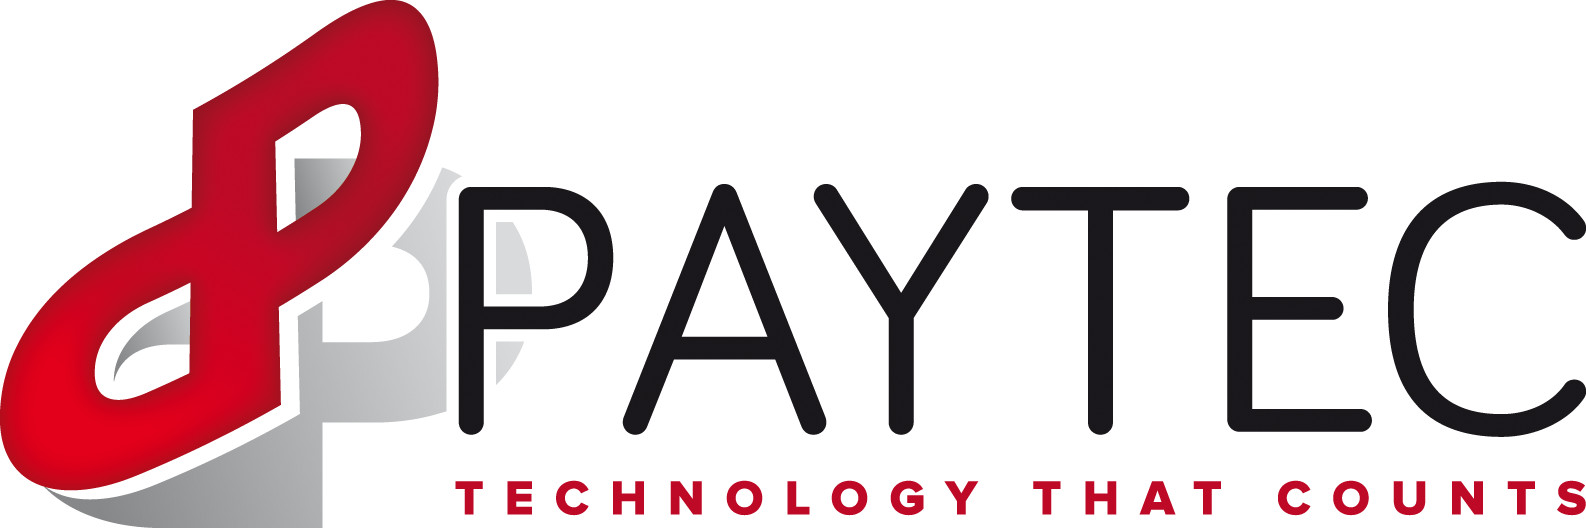 Paytec Technology that Counts